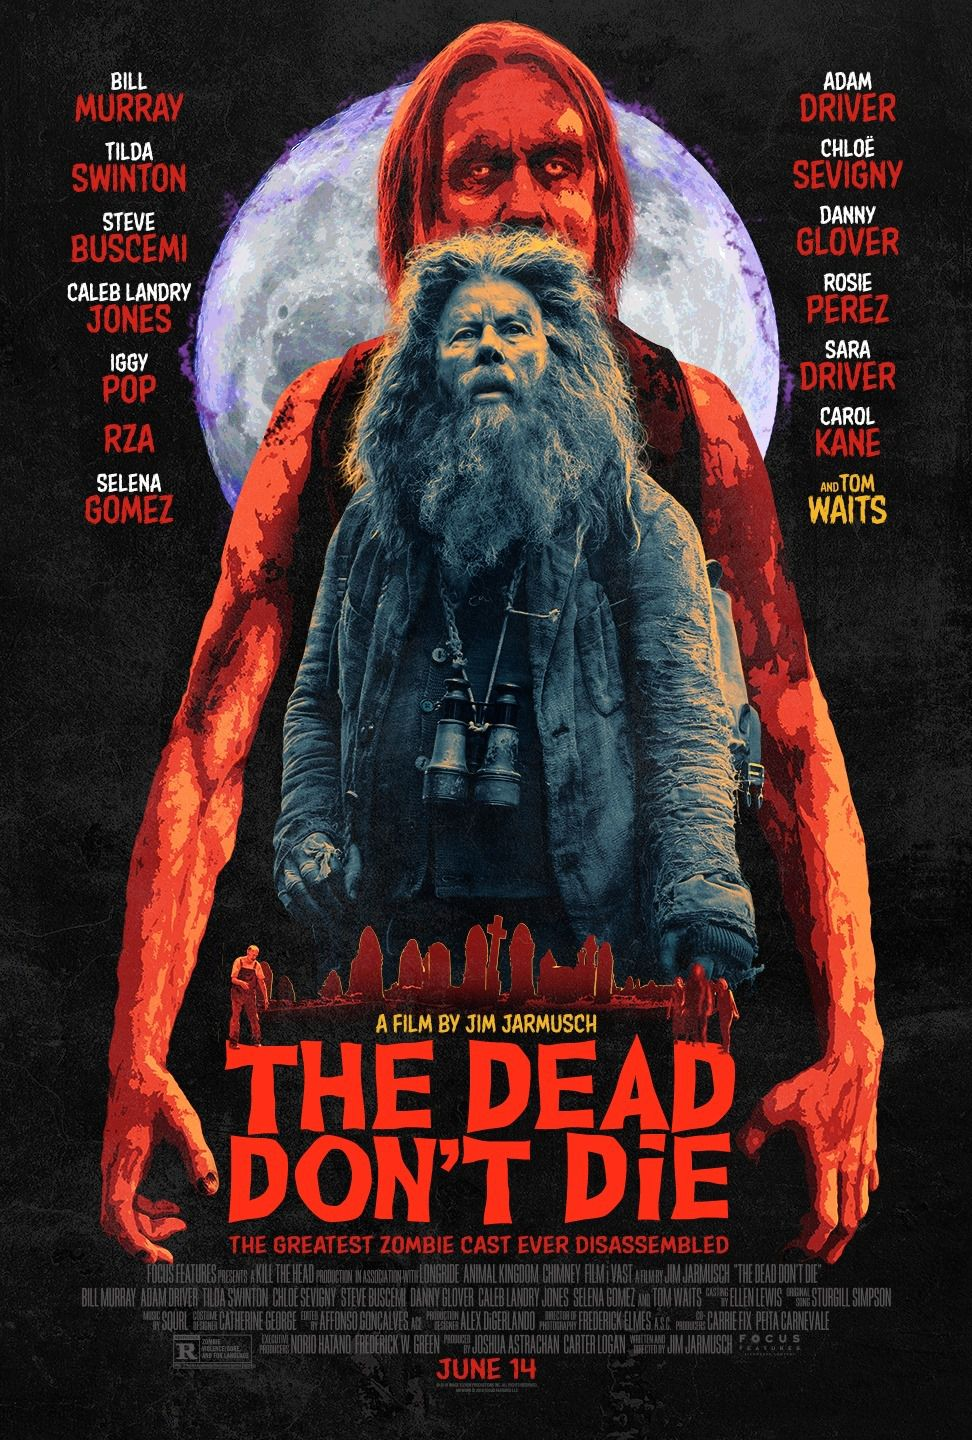 The Dead Don't Die 2019 Tom Waits